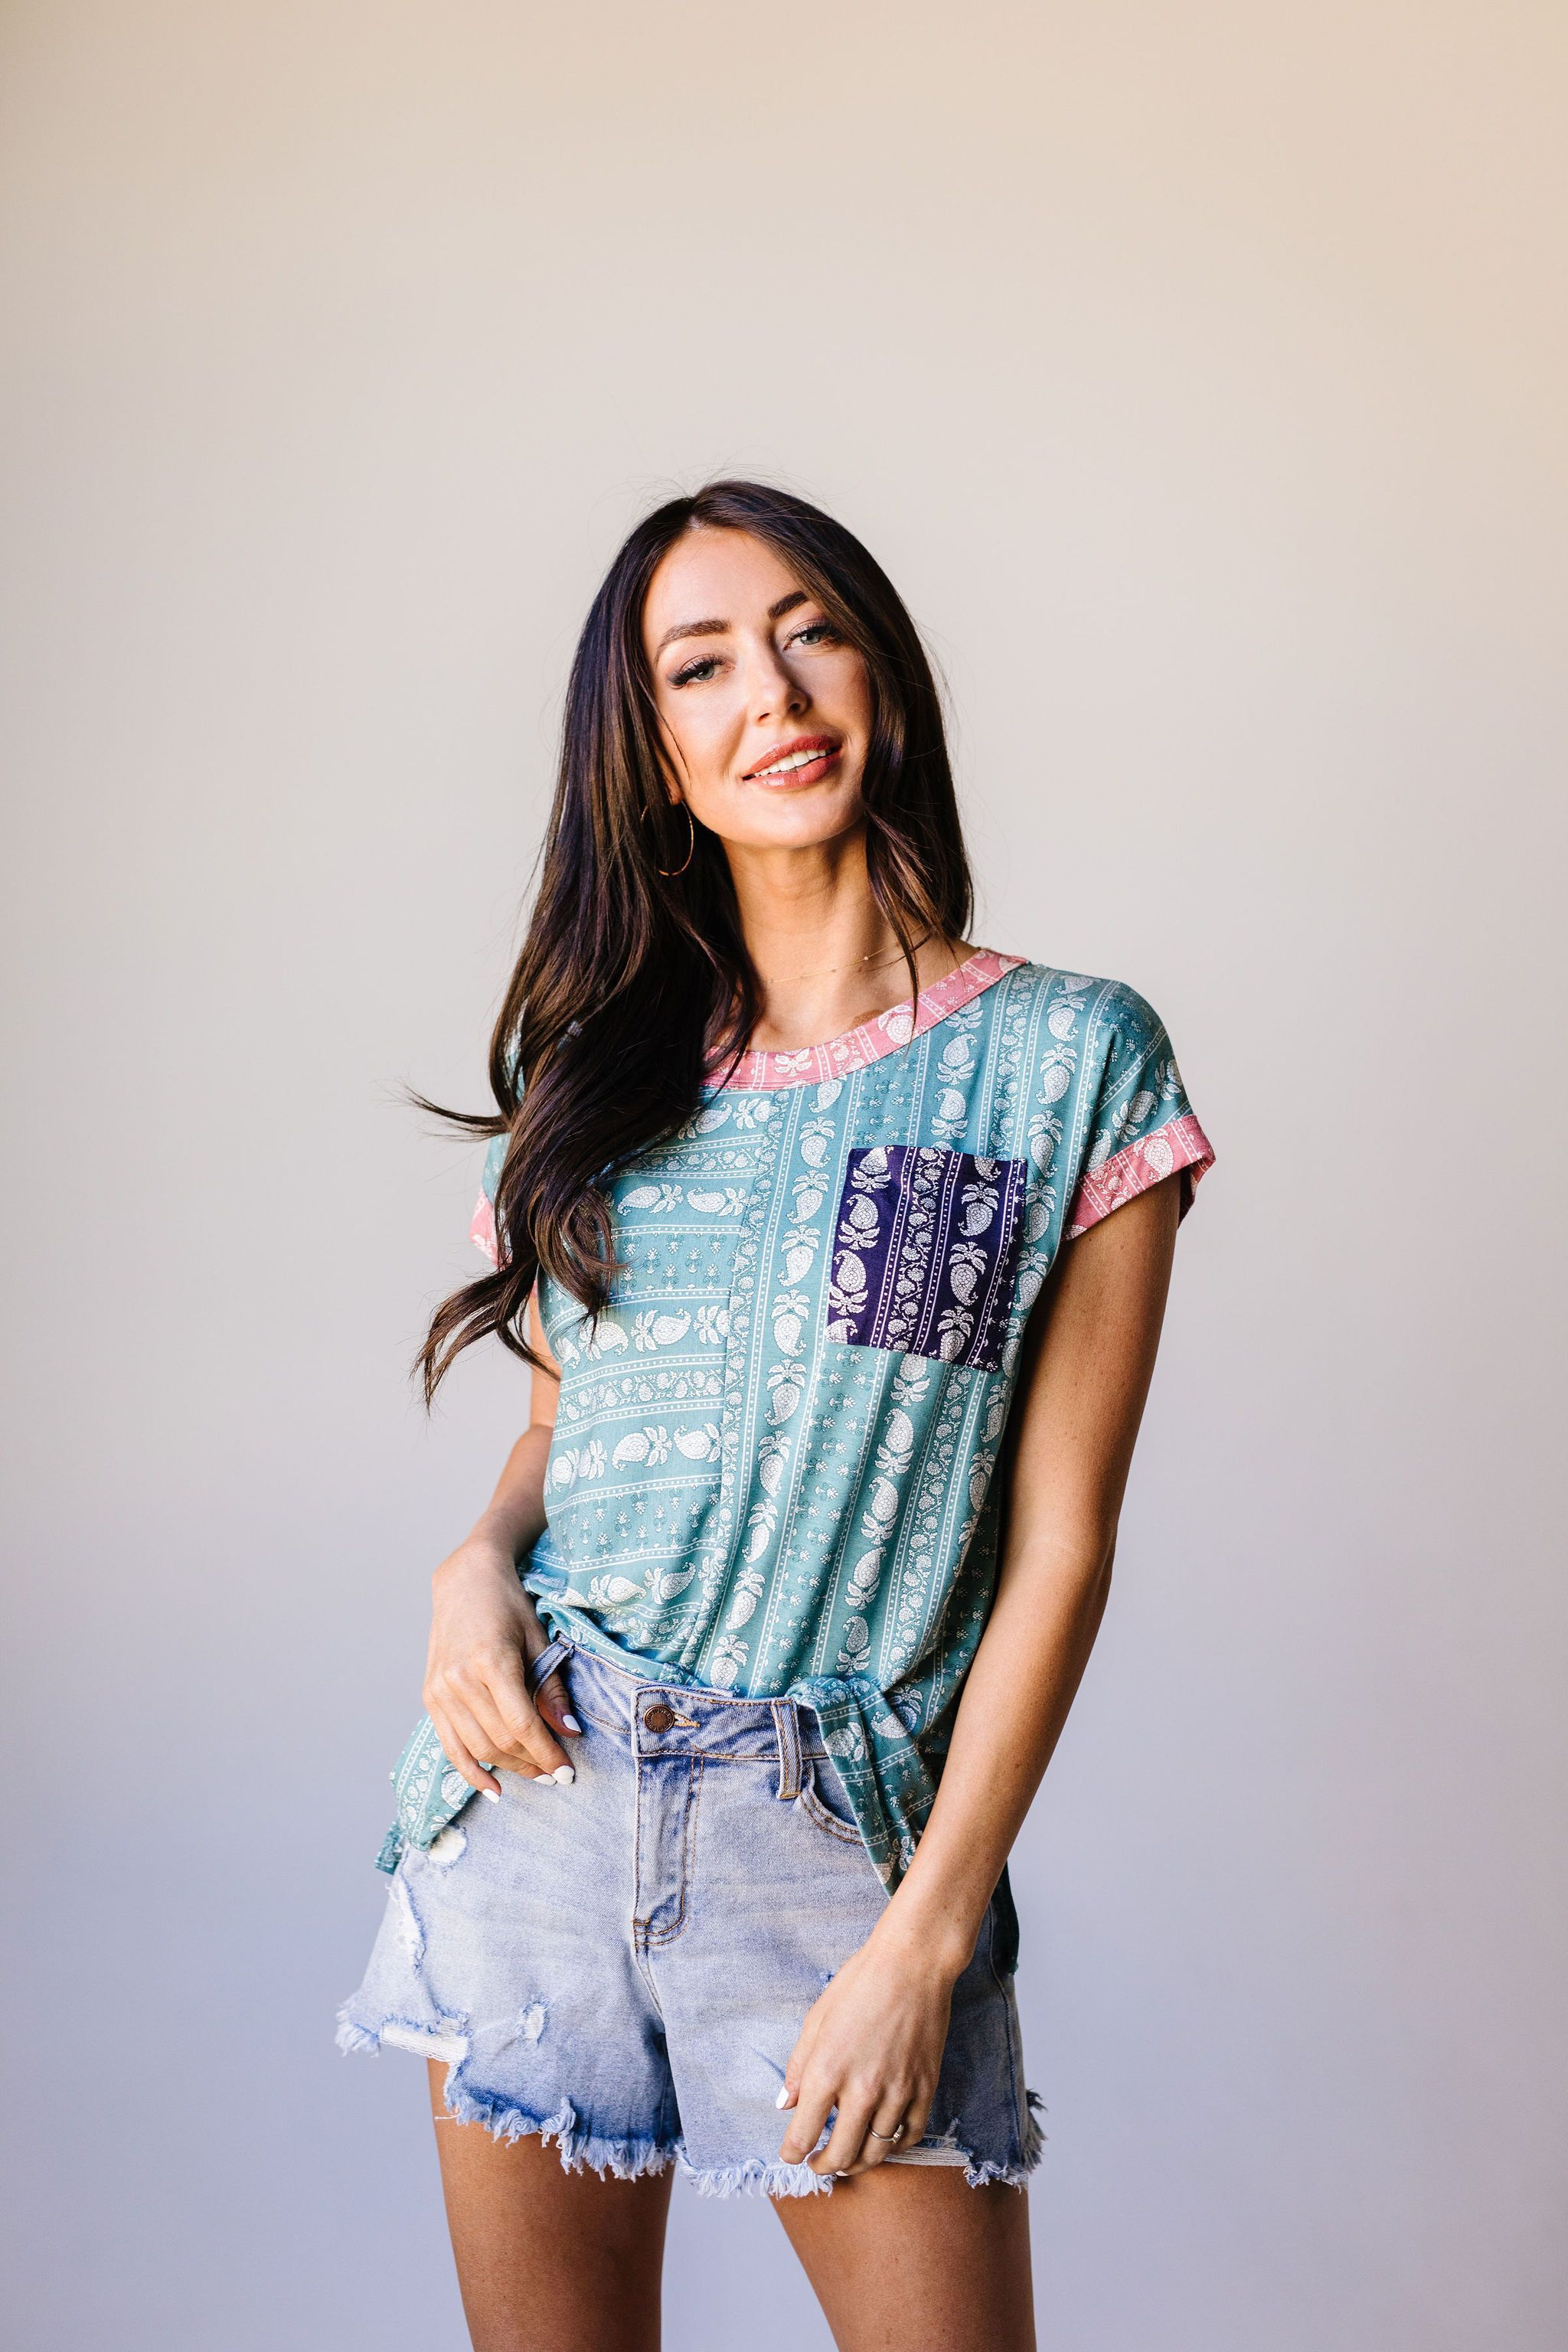 This tee shirt's biggest highlight is the paisley pattern! It's fun, and adds something just a little bit different to your wardrobe. It doesn't end there though; the paisley pattern also has contrasting colors on the cute functional pocket and along the round neckline, and short sleeve hems! LightweightStretchy95% Polyester 5% SpandexRelaxed Fit Made In USA*Measurements listed below are of the actual clothing item* XS: Chest 36